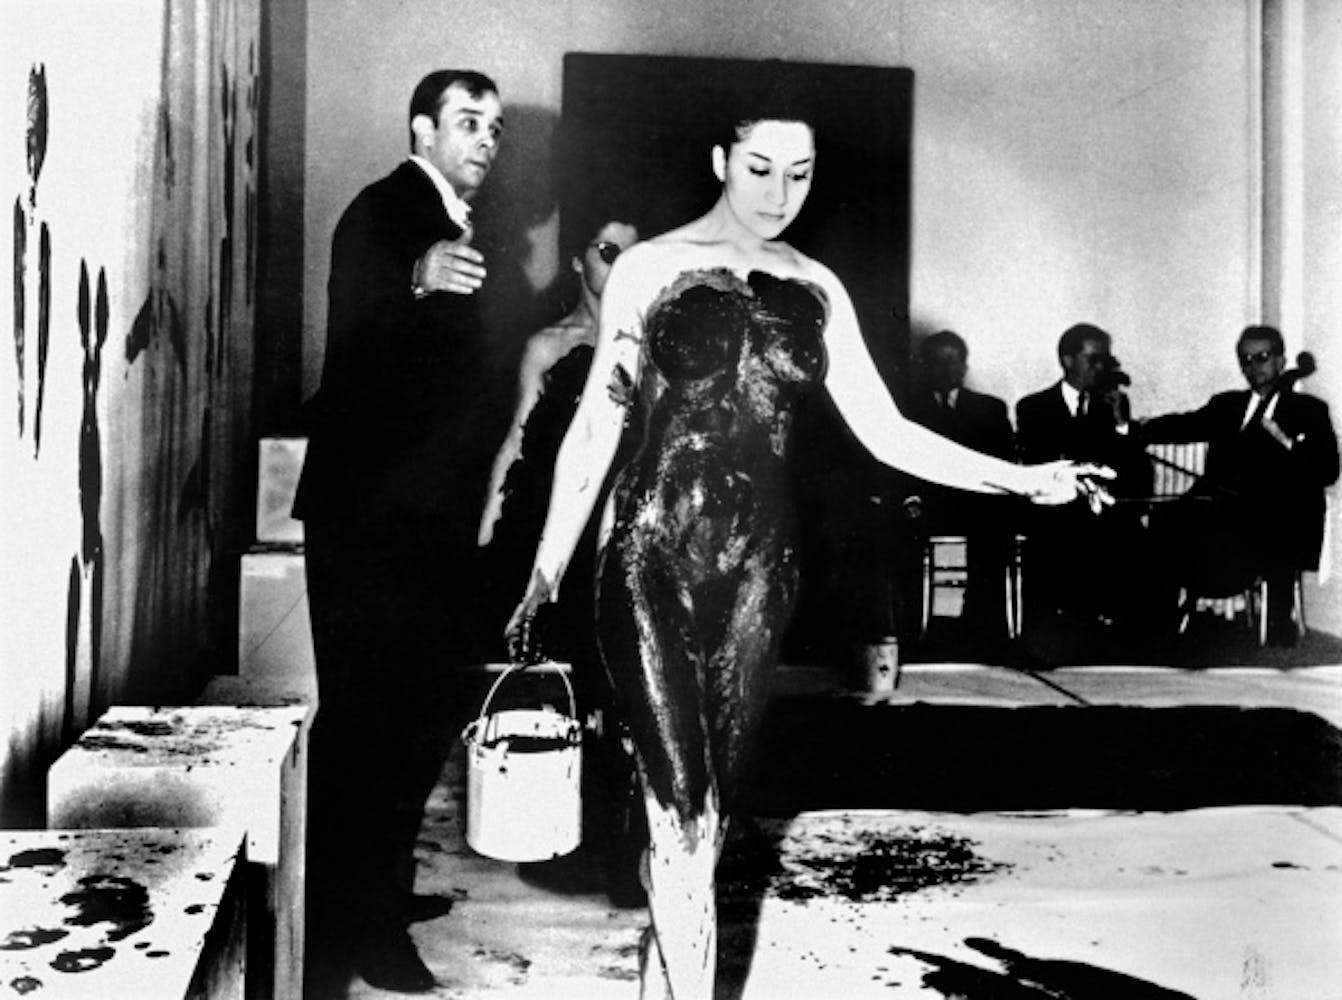 Yves Klein, Yves Klein and a model during an Anthropometry performance at the Galerie internationale d'art contemporain, March 9, 1960, 1960